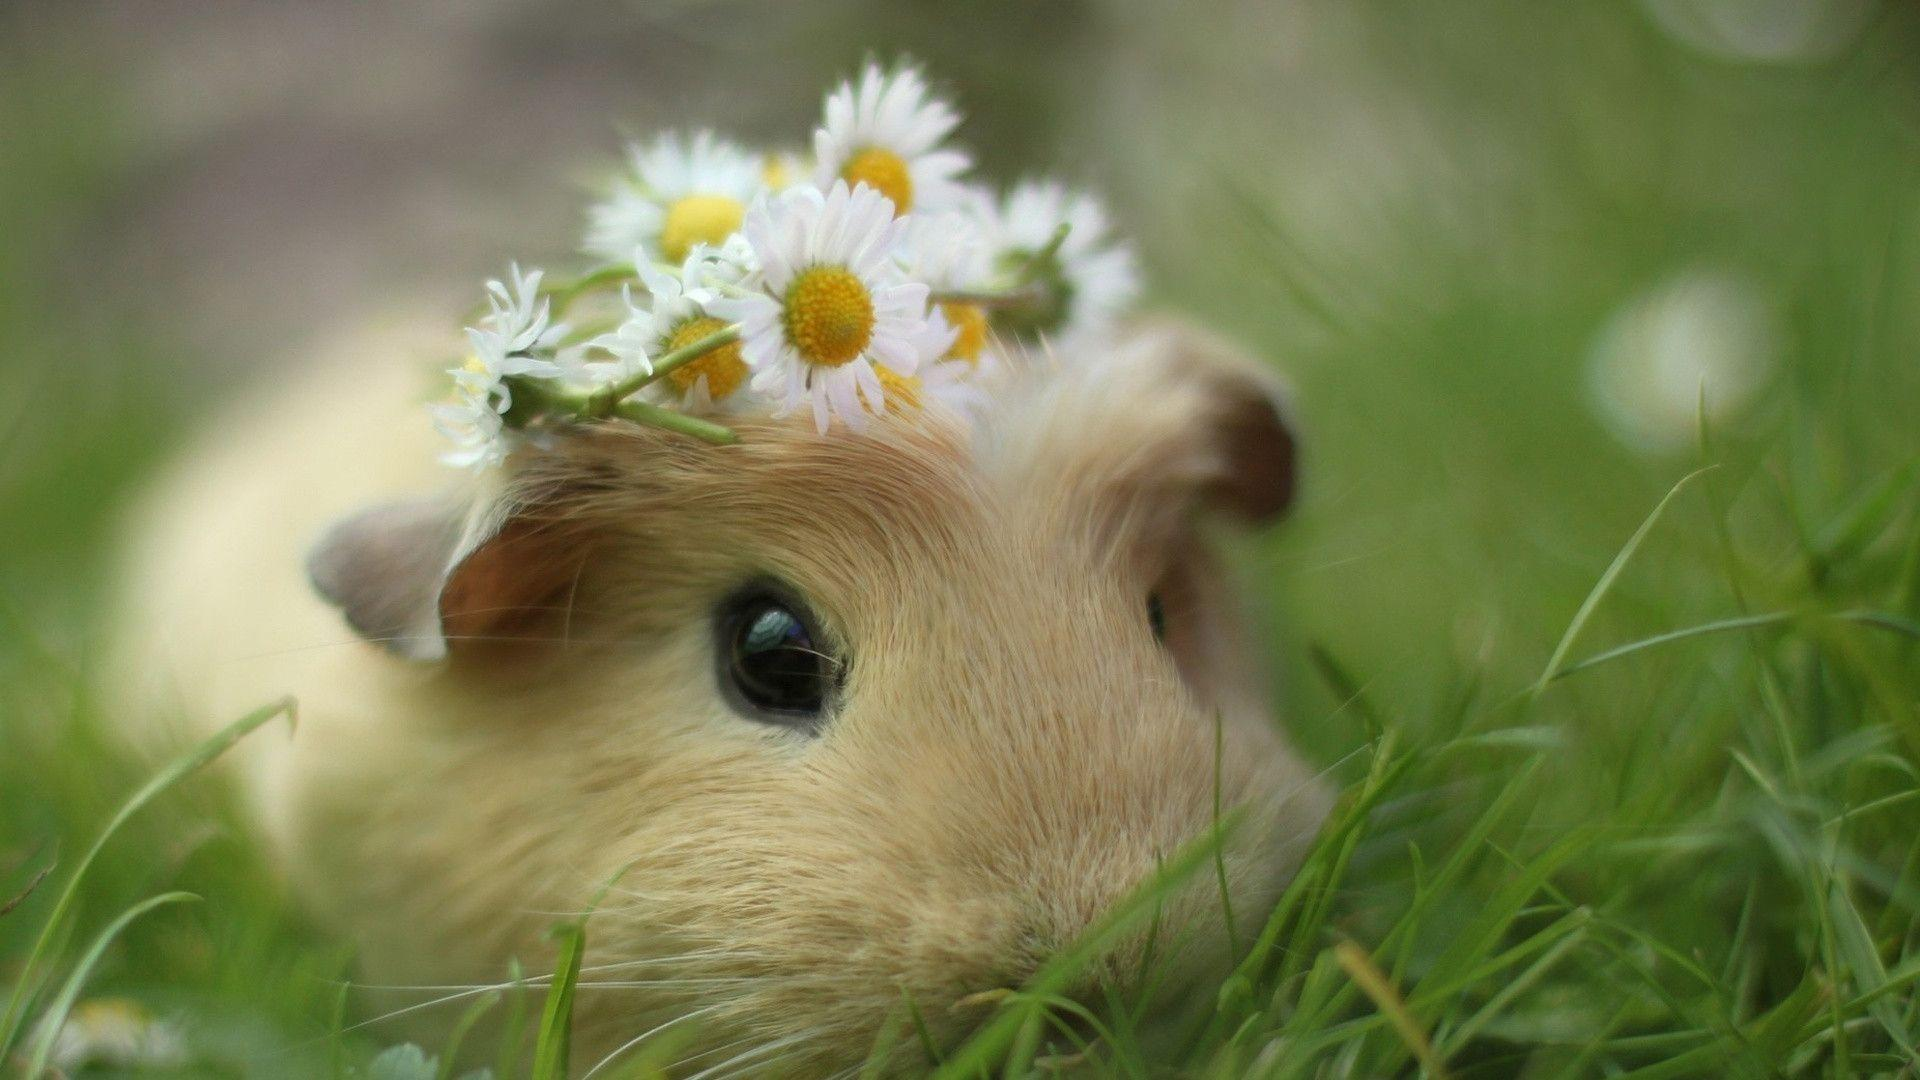 Guinea Pig Wallpapers 1920x1080